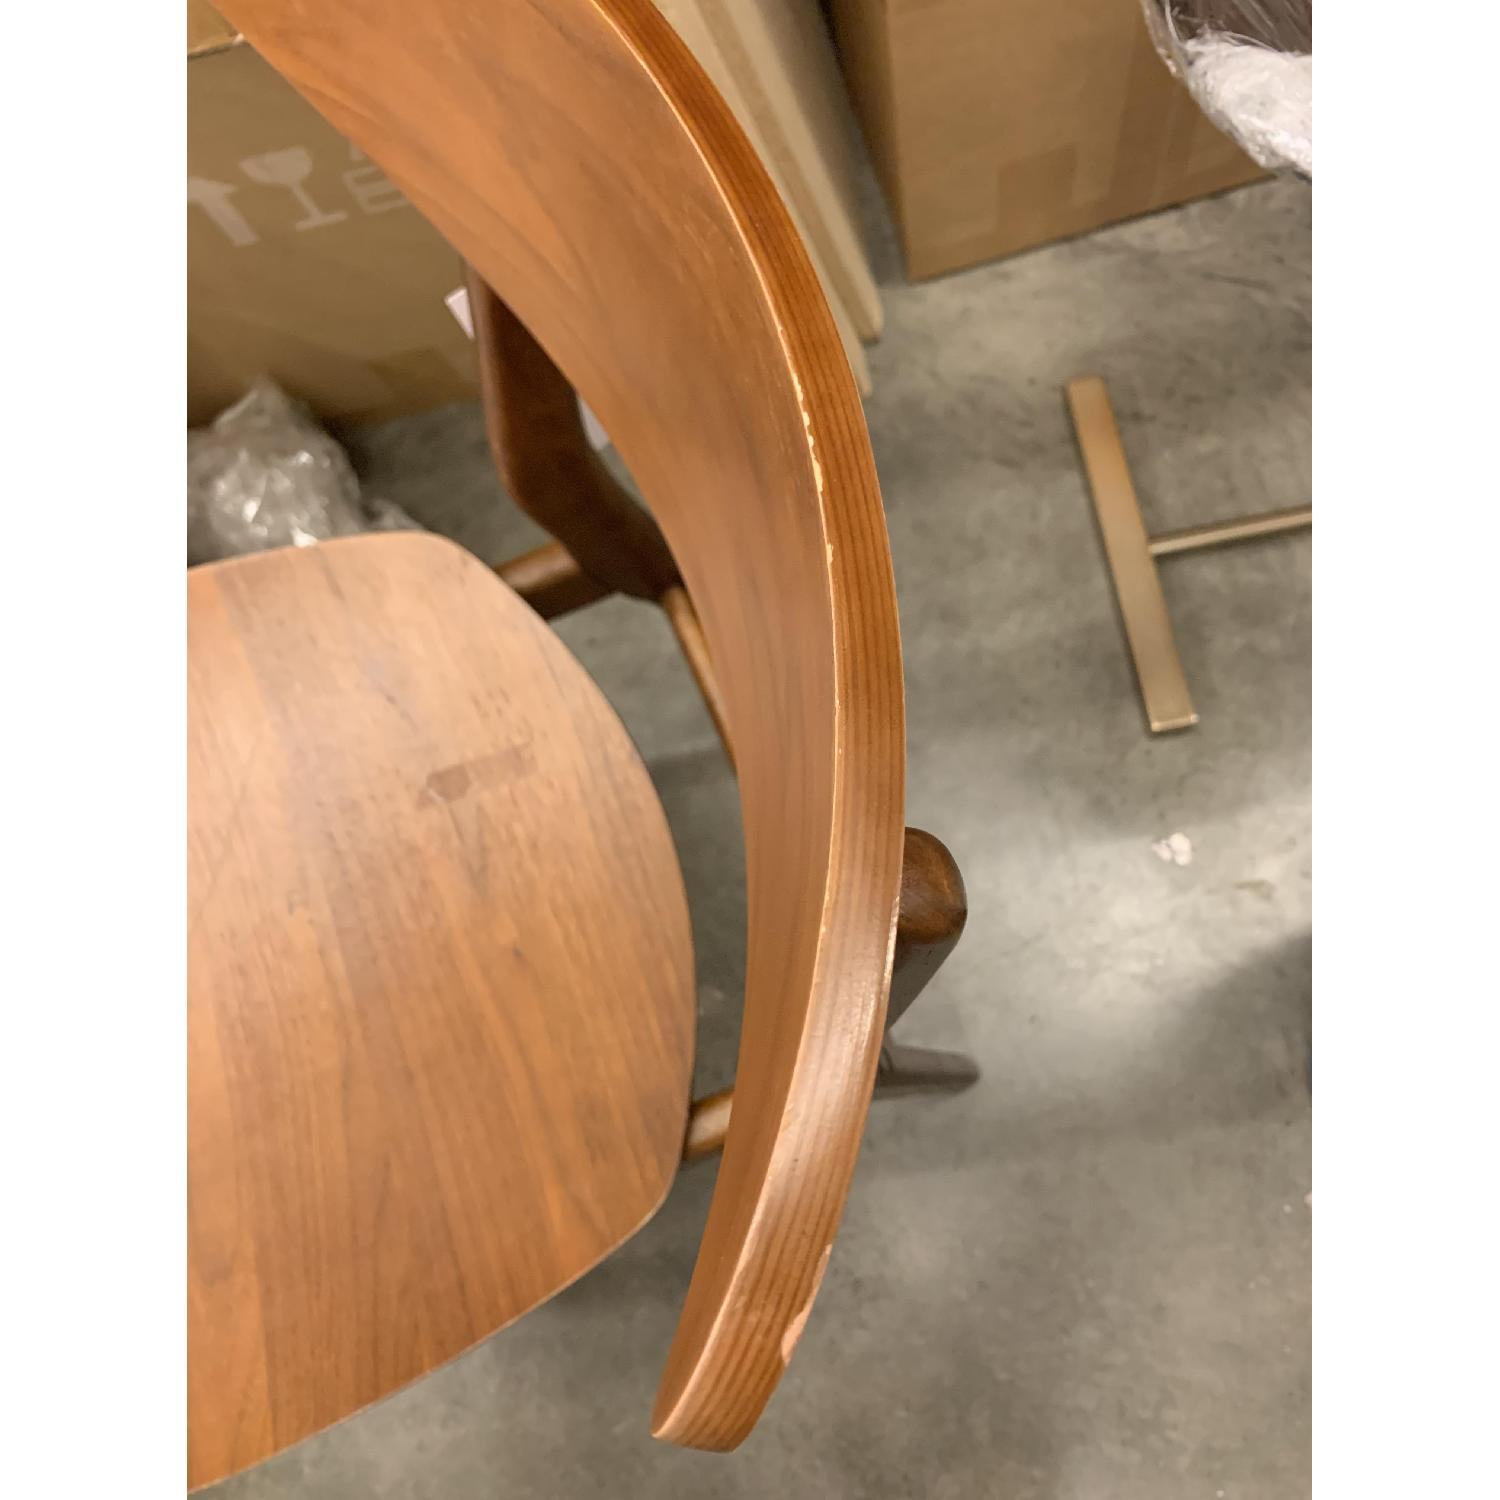 West Elm Classic Cafe Wood Dining Chairs in Walnut - image-1